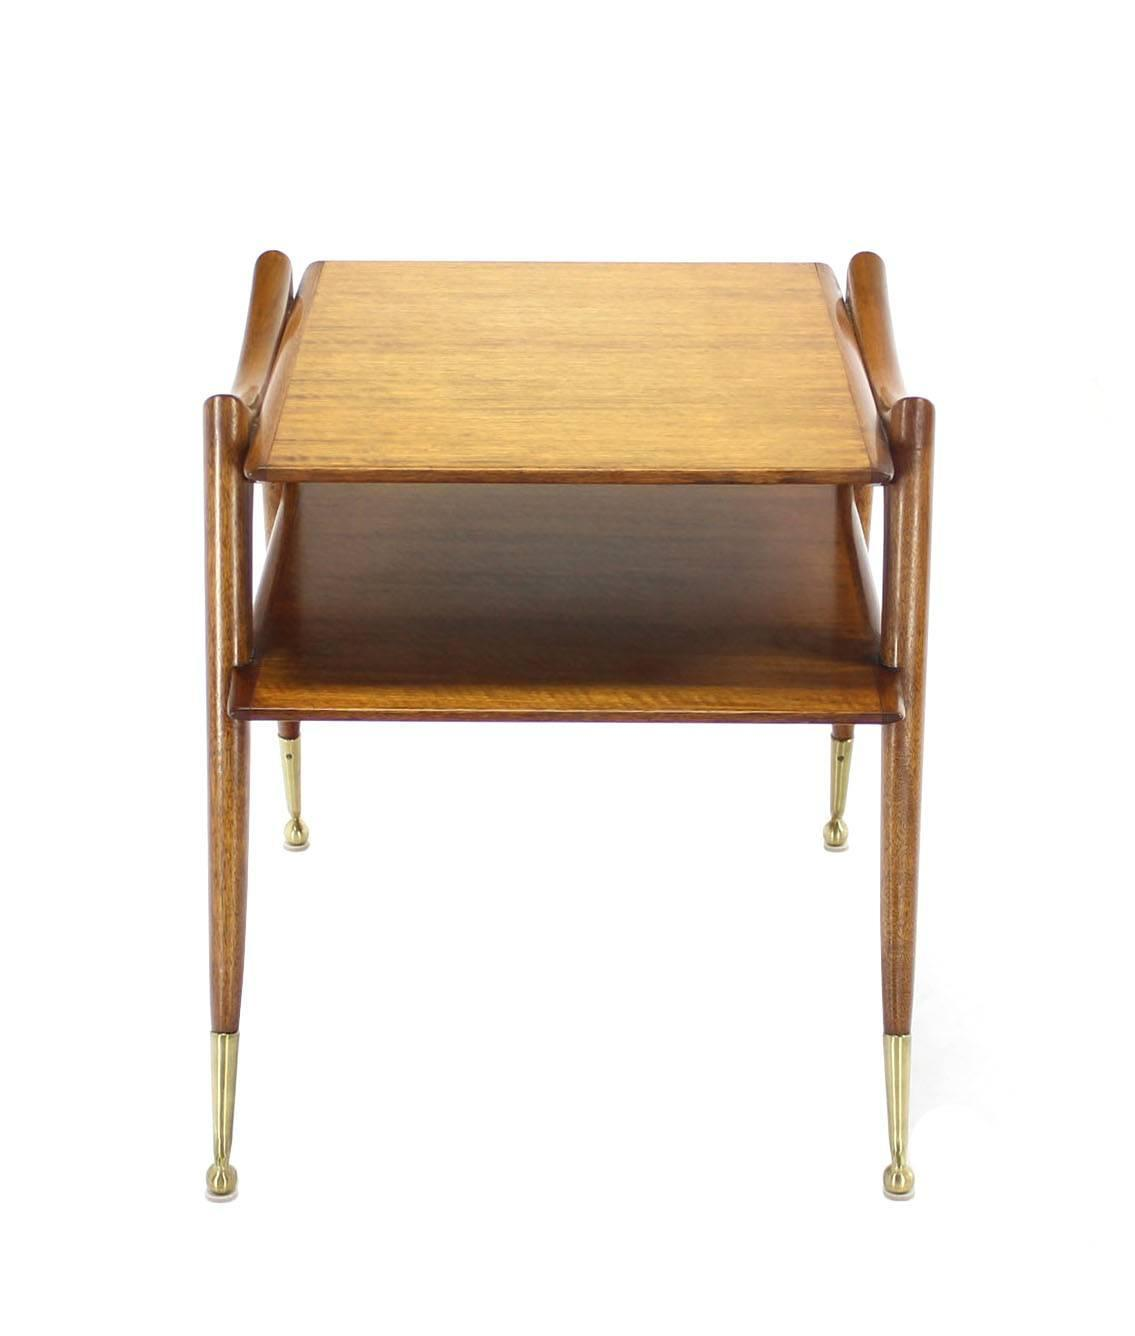 Mid Century Modern Sculptural Legs Side Table For Sale At